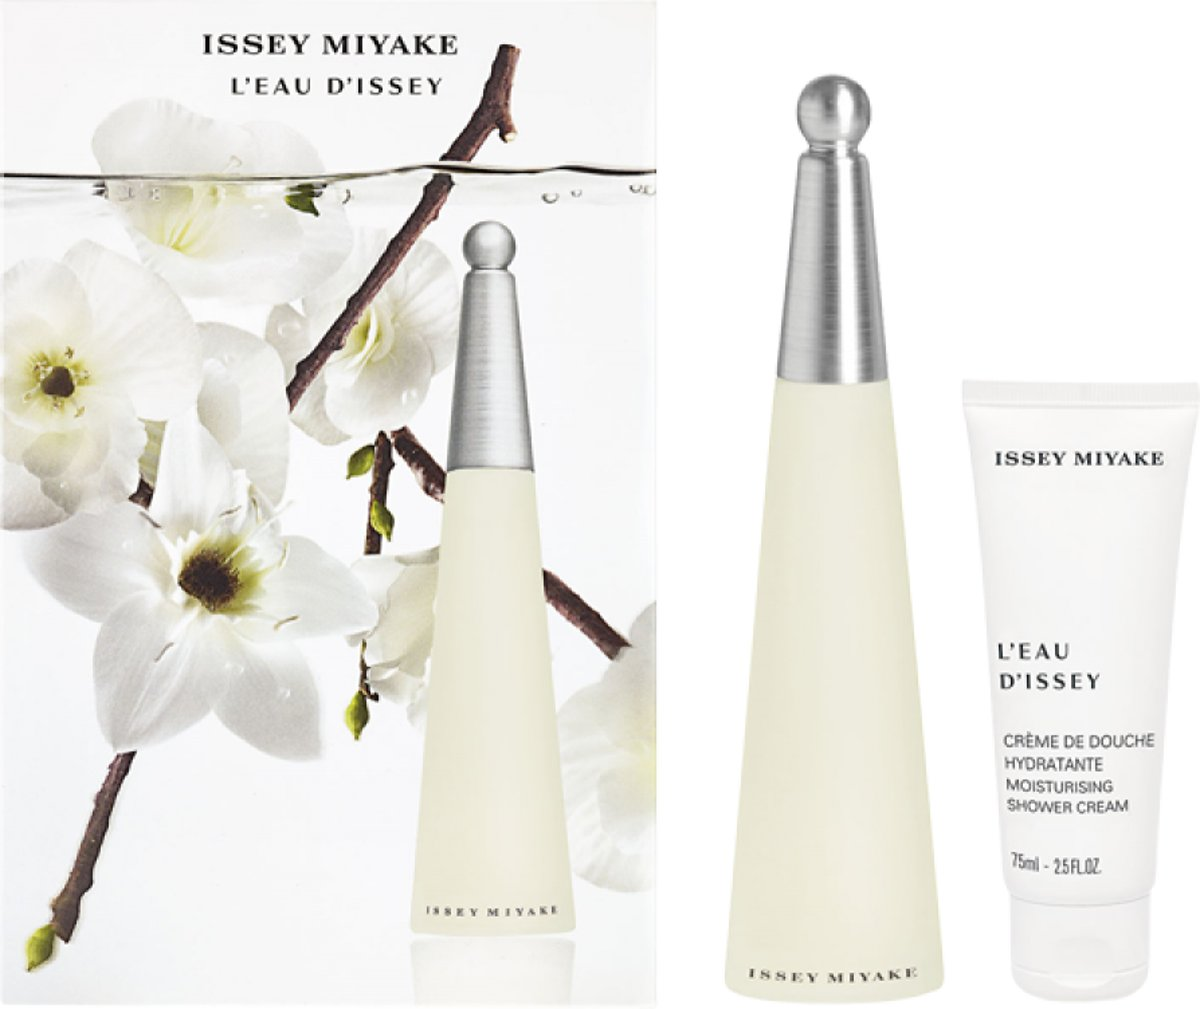 Issey Miyake LEau DIssey Pour Femme Giftset 125 ml